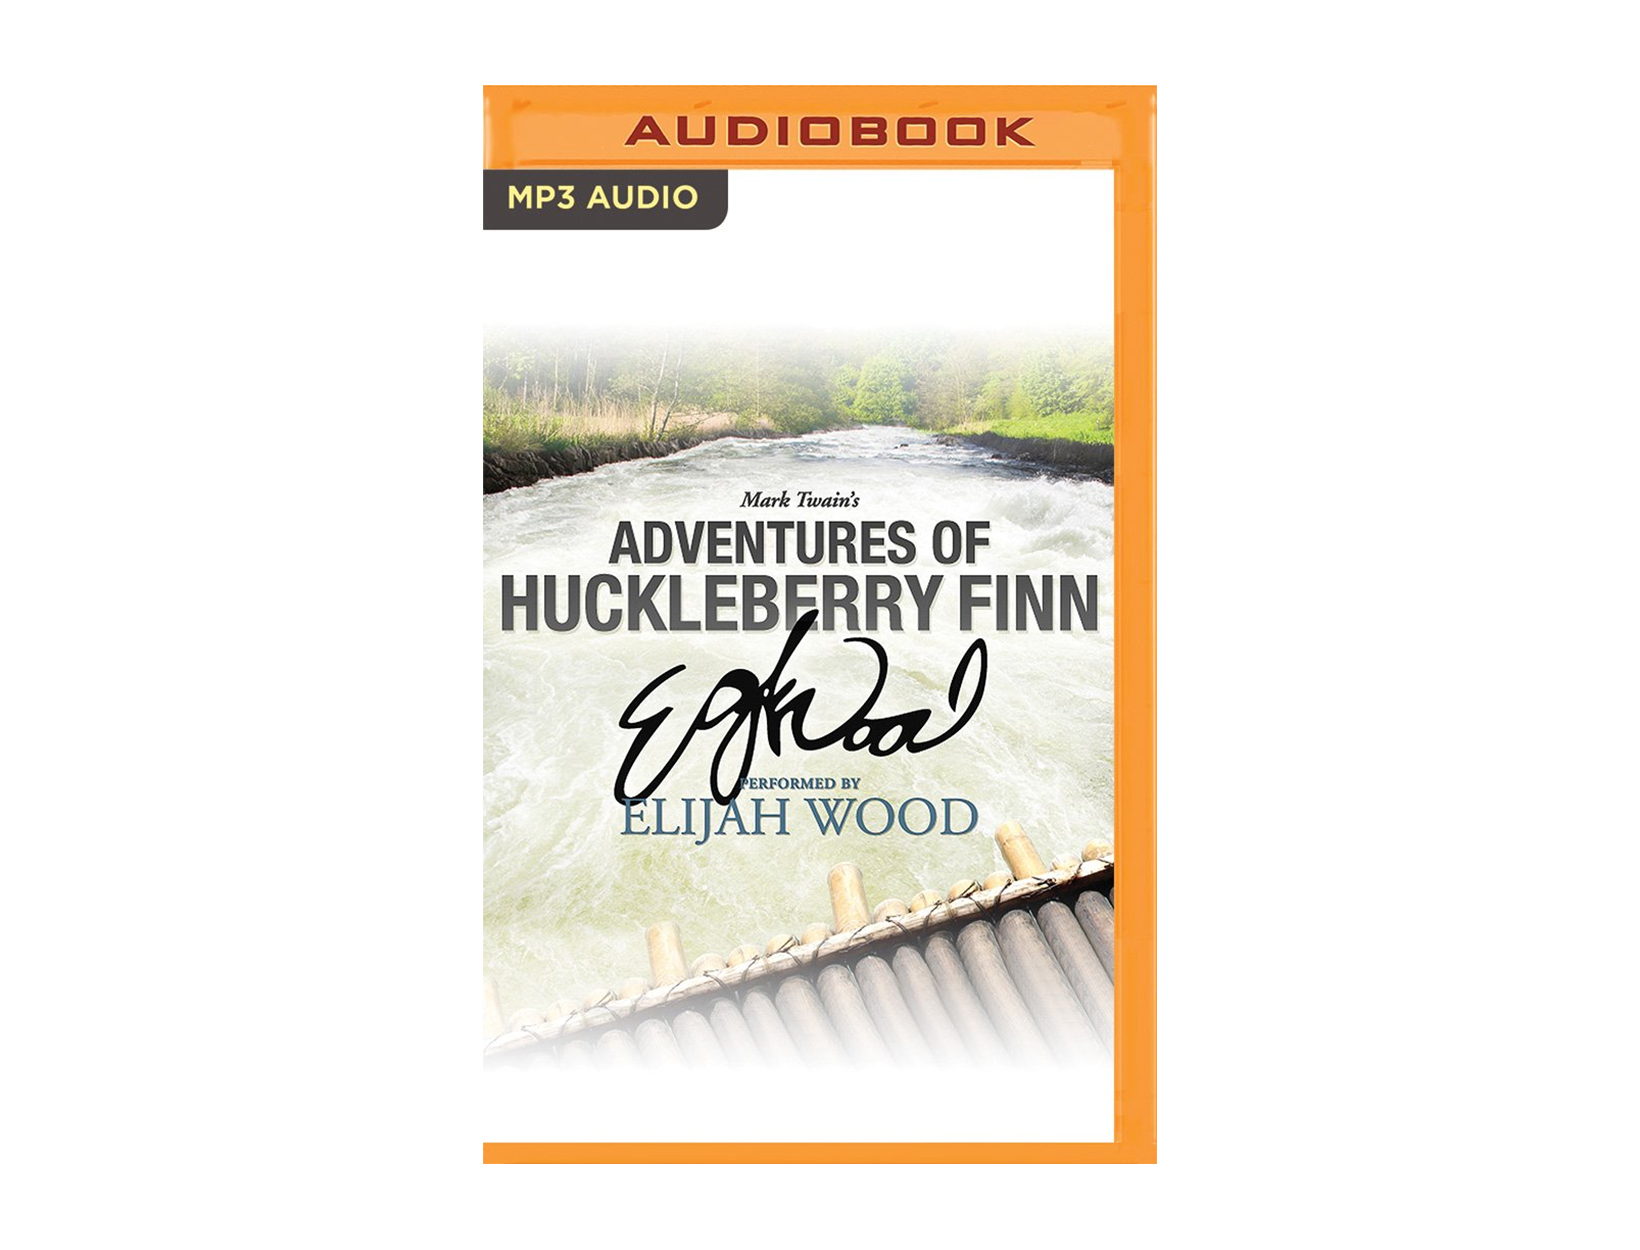 Adventures of Huckleberry Finn by Mark Twain, read by Elijah Wood